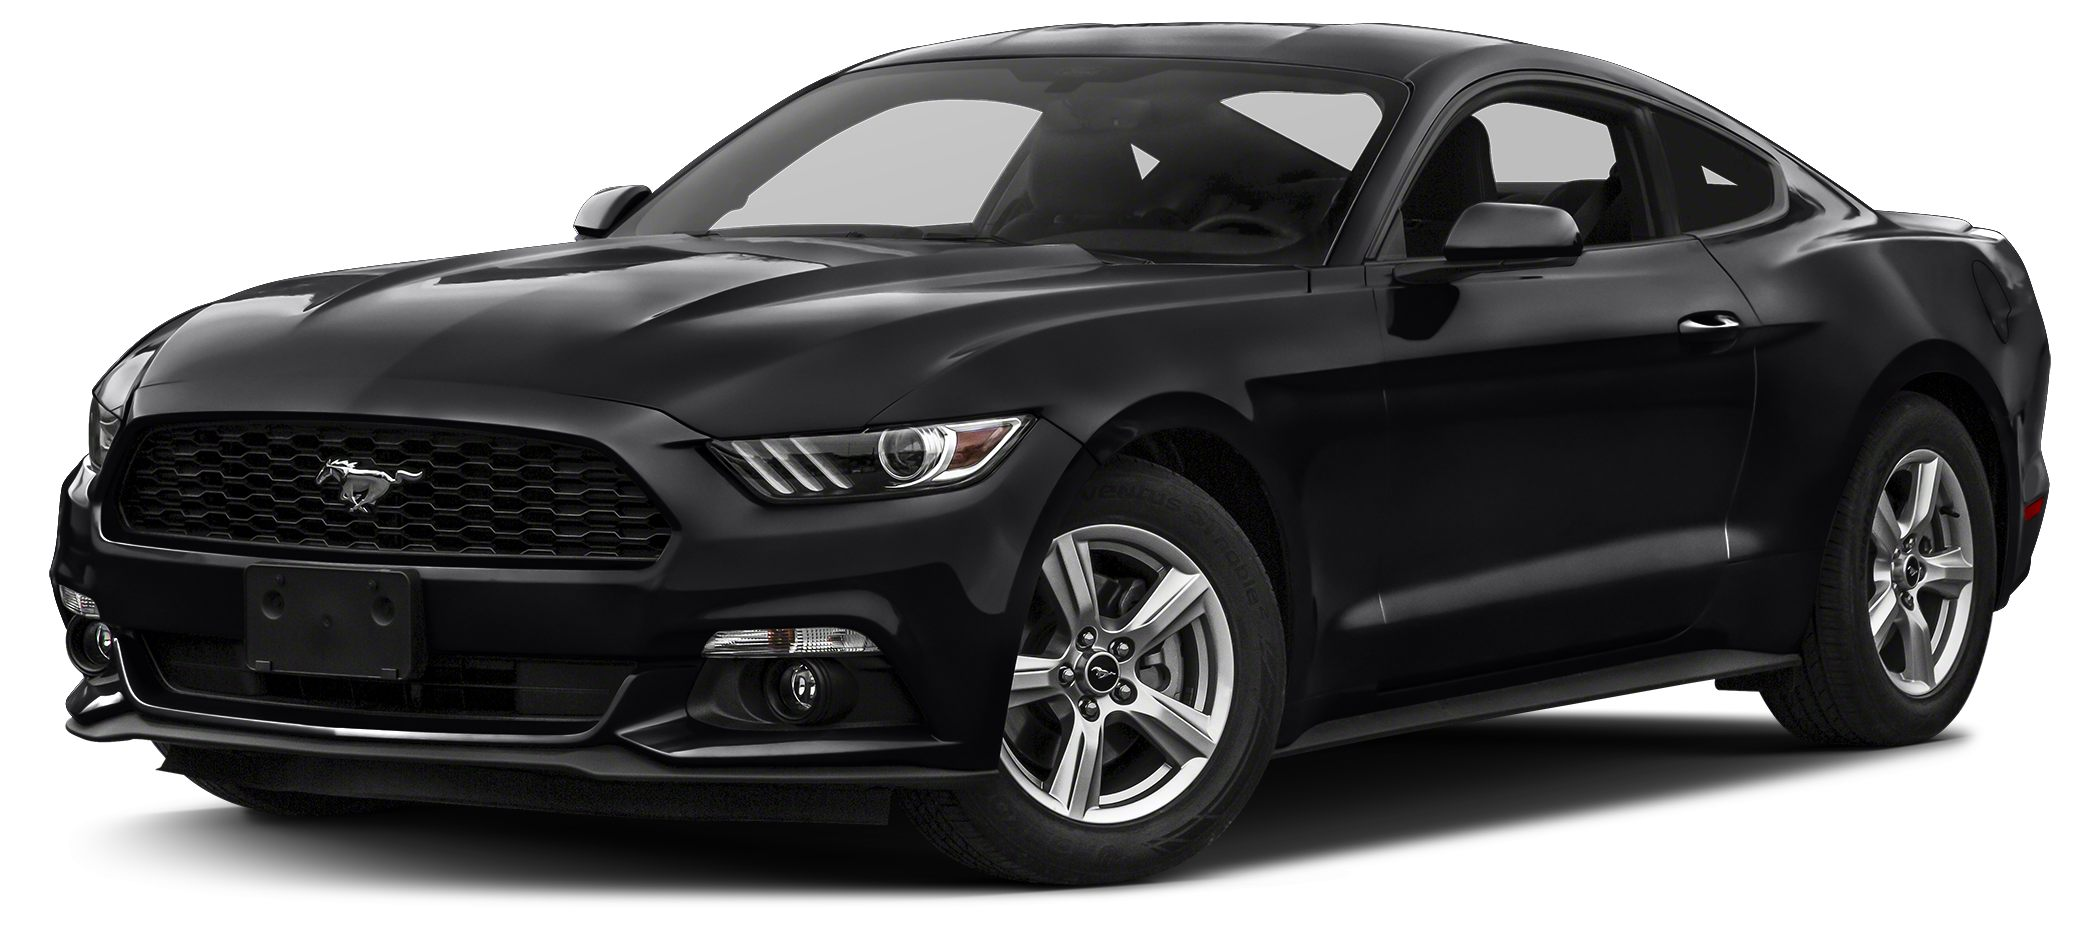 2017 Ford Mustang EcoBoost Premium The Ford Mustang is an American classic that lives on The body